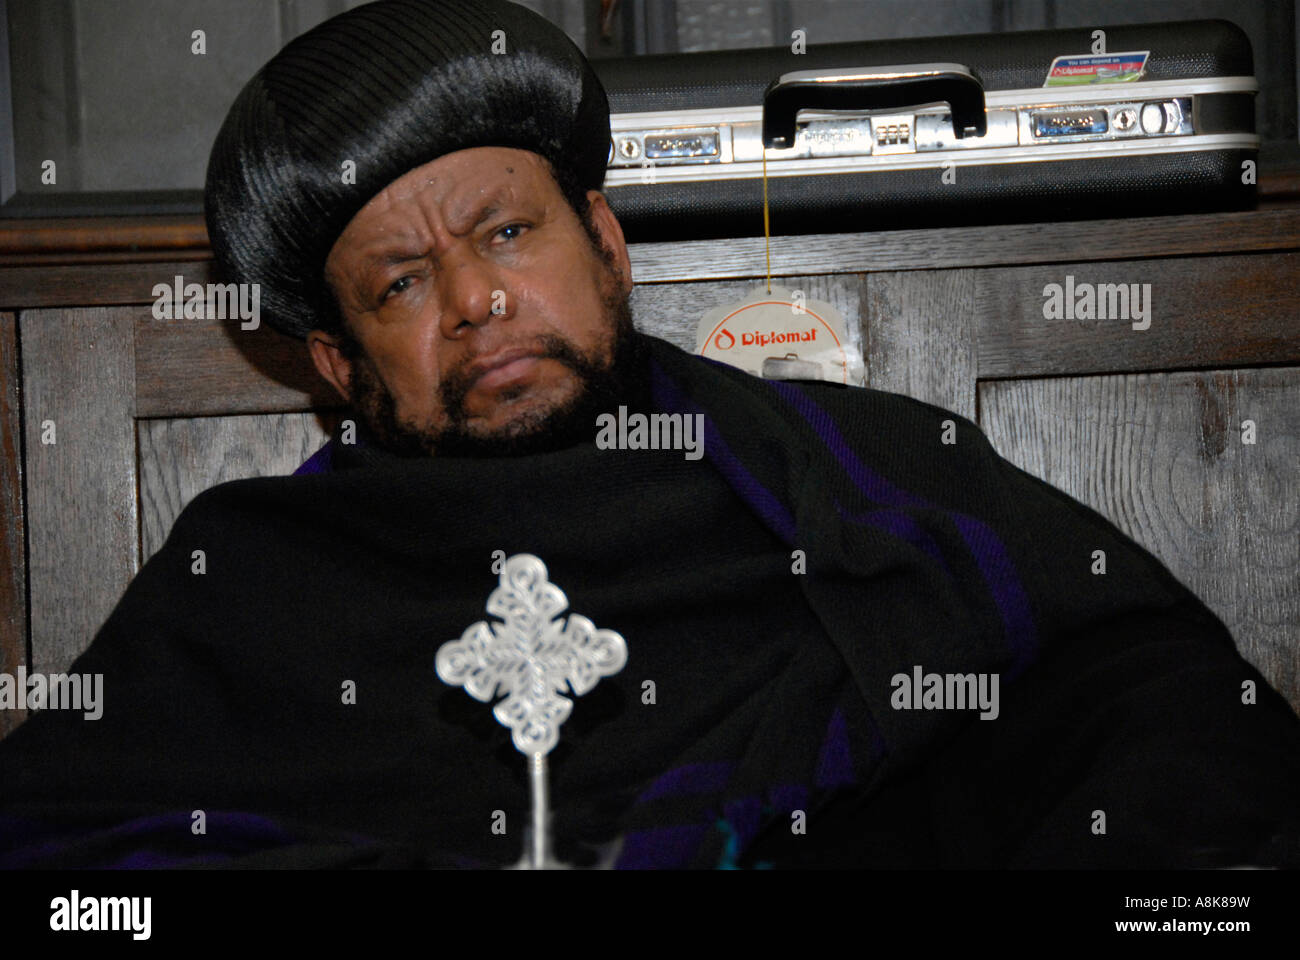 Archbishop of  Ethiopian orthodox Tewahedo Church in London eating feast - Stock Image